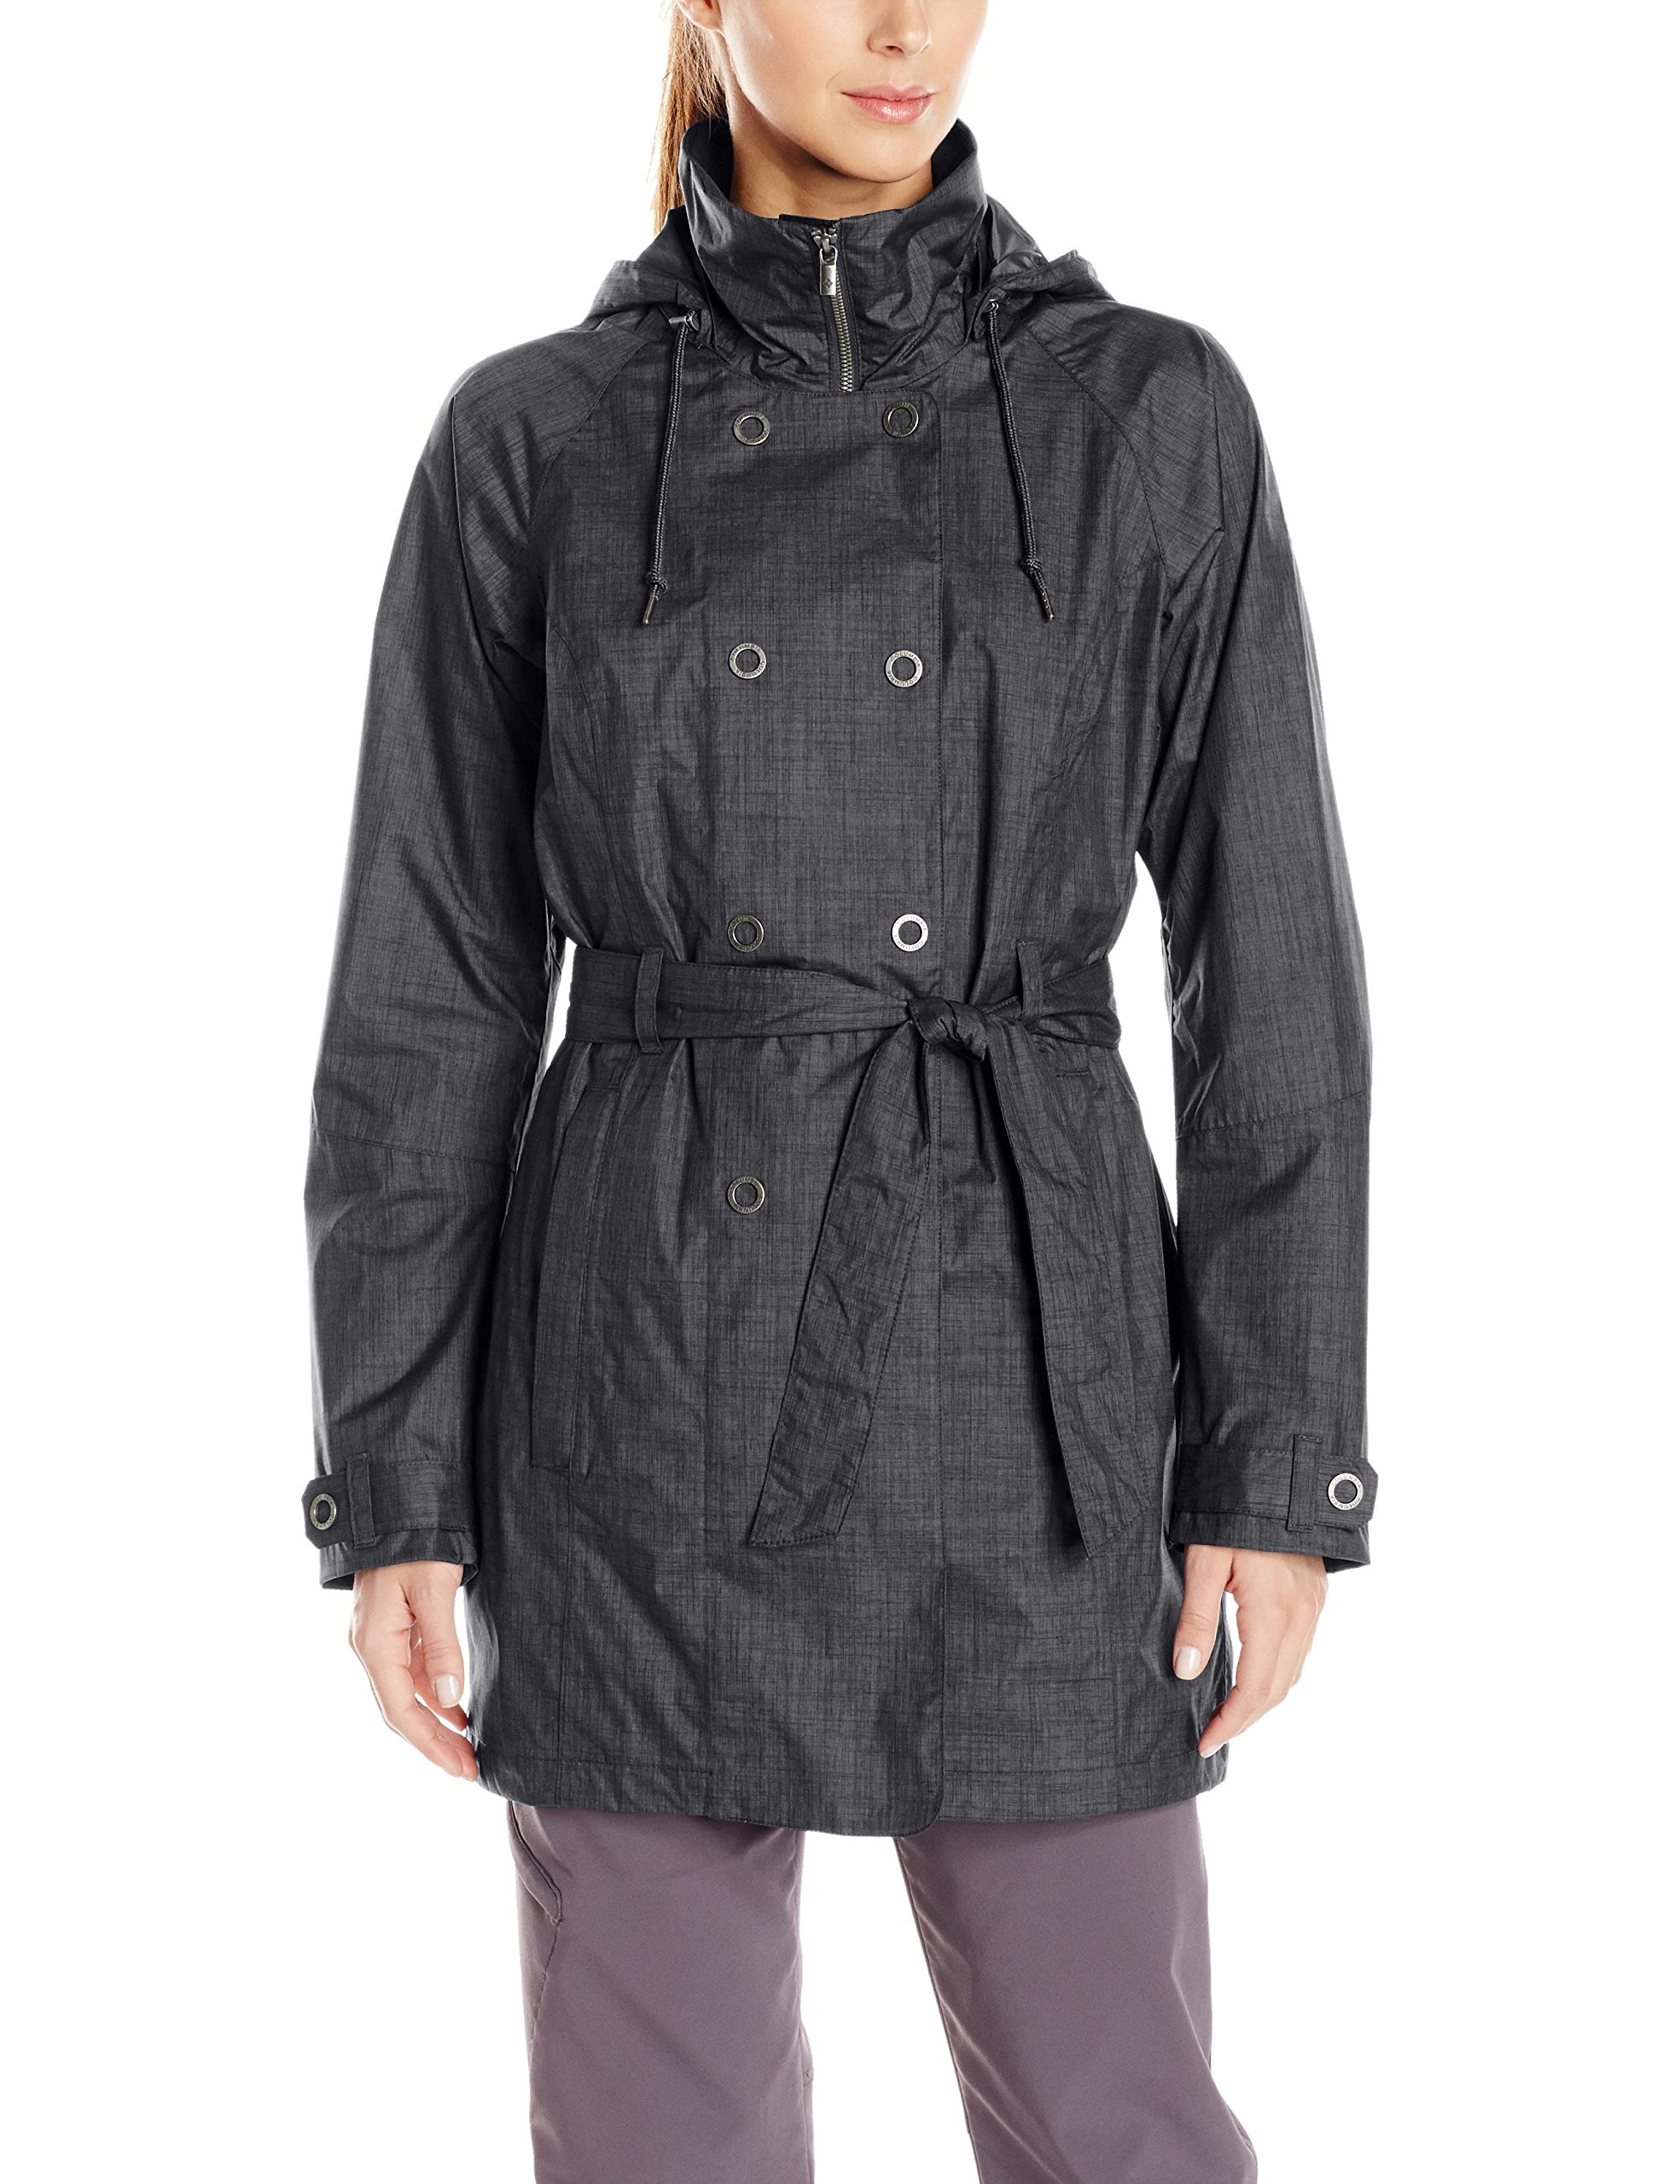 Columbia Women's Steal Your Thunder Jacket, Medium, Black by Columbia (Image #5)